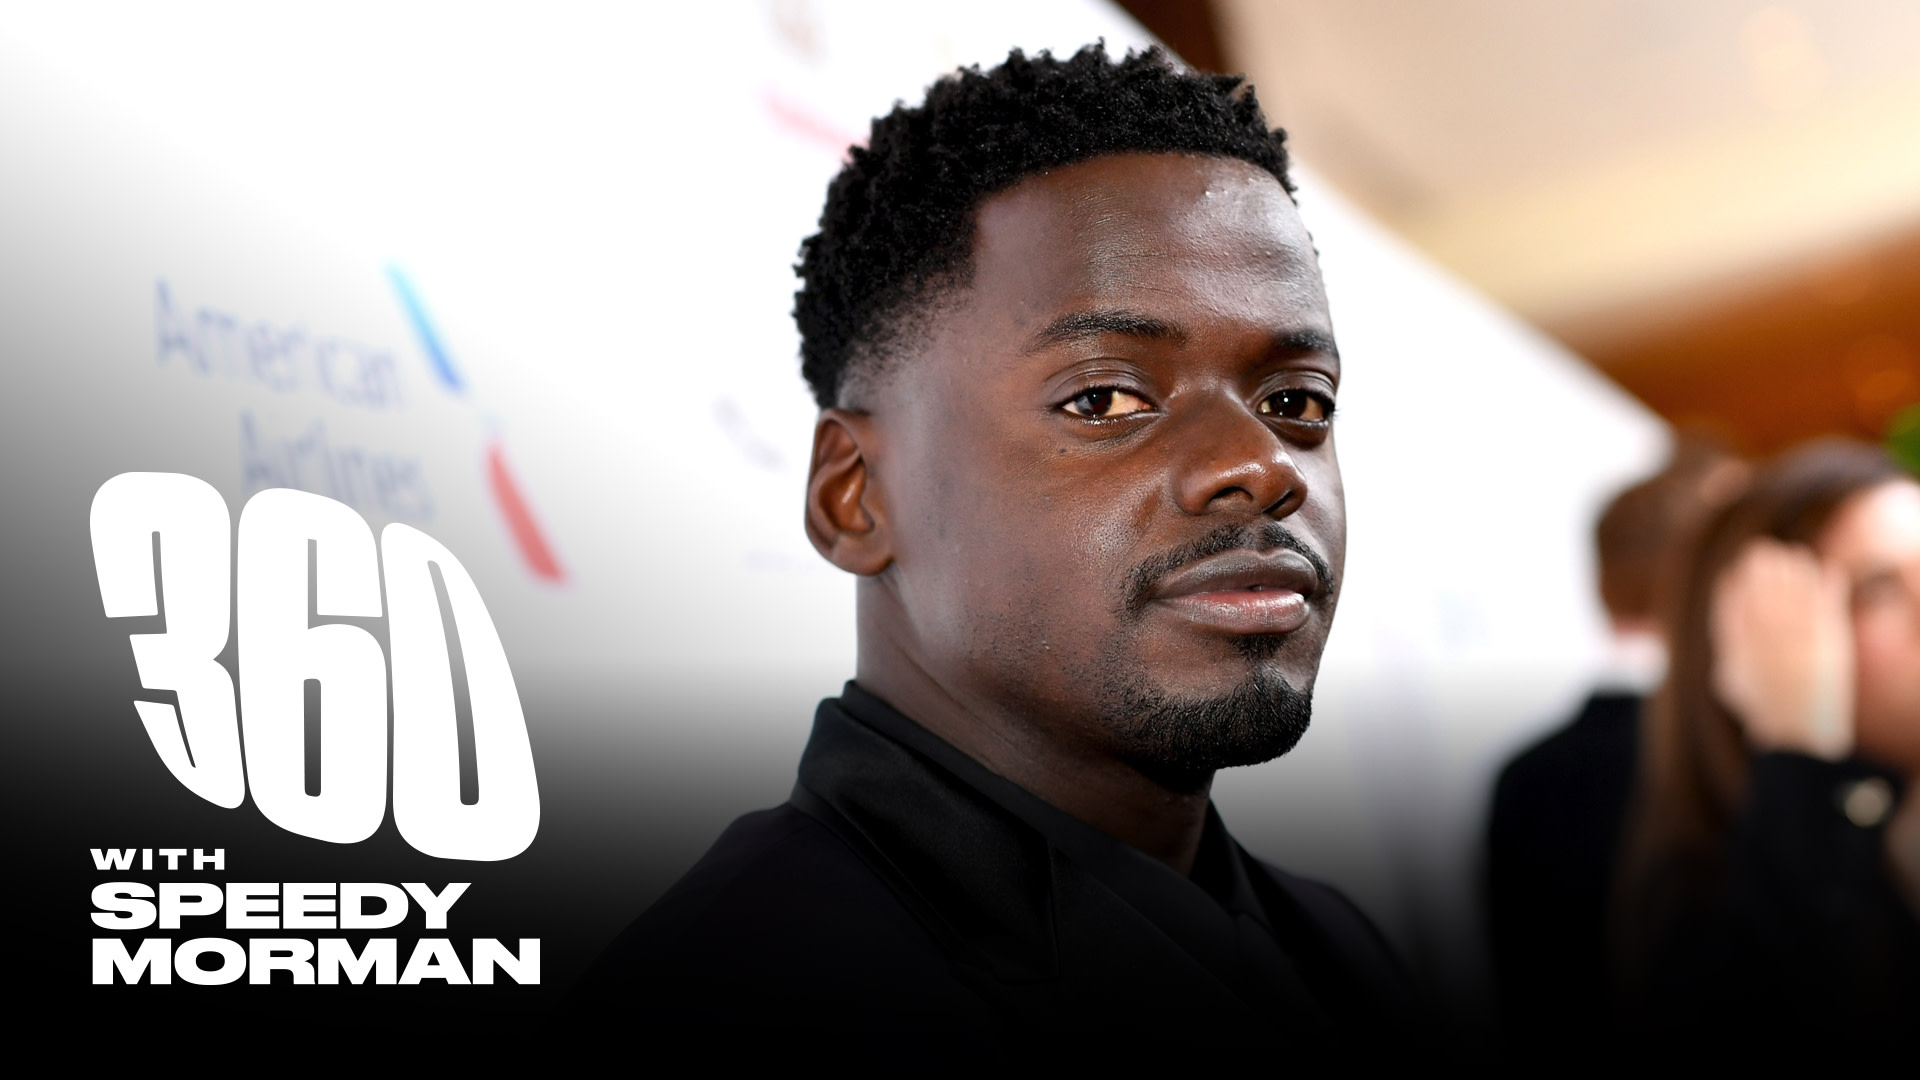 Daniel Kaluuya on Chadwick Boseman Story, His Unimpressed Mom & Judas & the Black Messiah | 360 With Speedy Morman